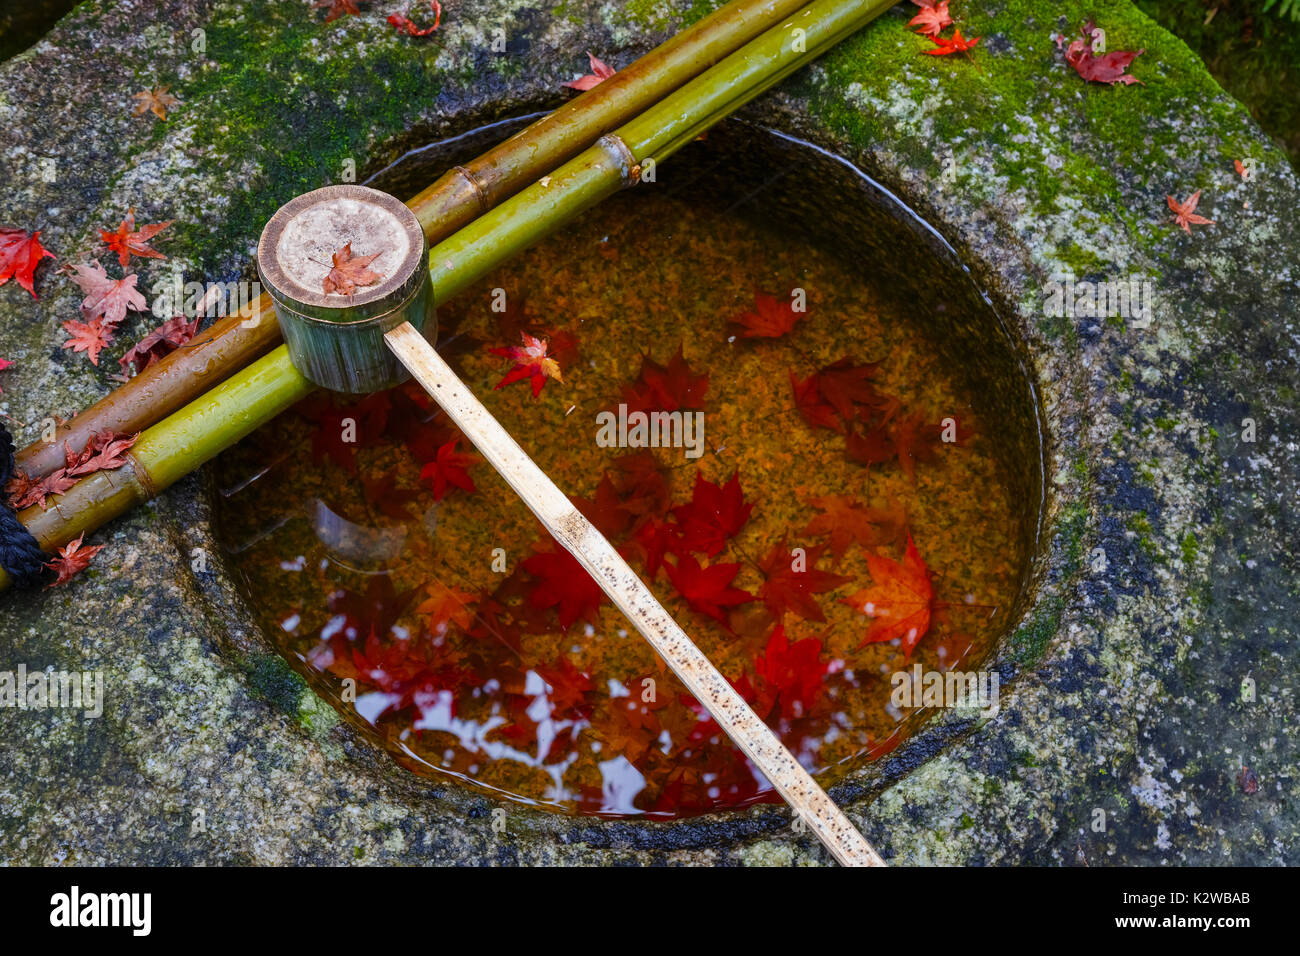 Water dipper on a stone basin at Koto-in Temple in Kyoto, Japan   KYOTO, JAPAN - NOVEMBER 23 2015: Koto-in Temple is one of Daitokuji sub temples, fou - Stock Image